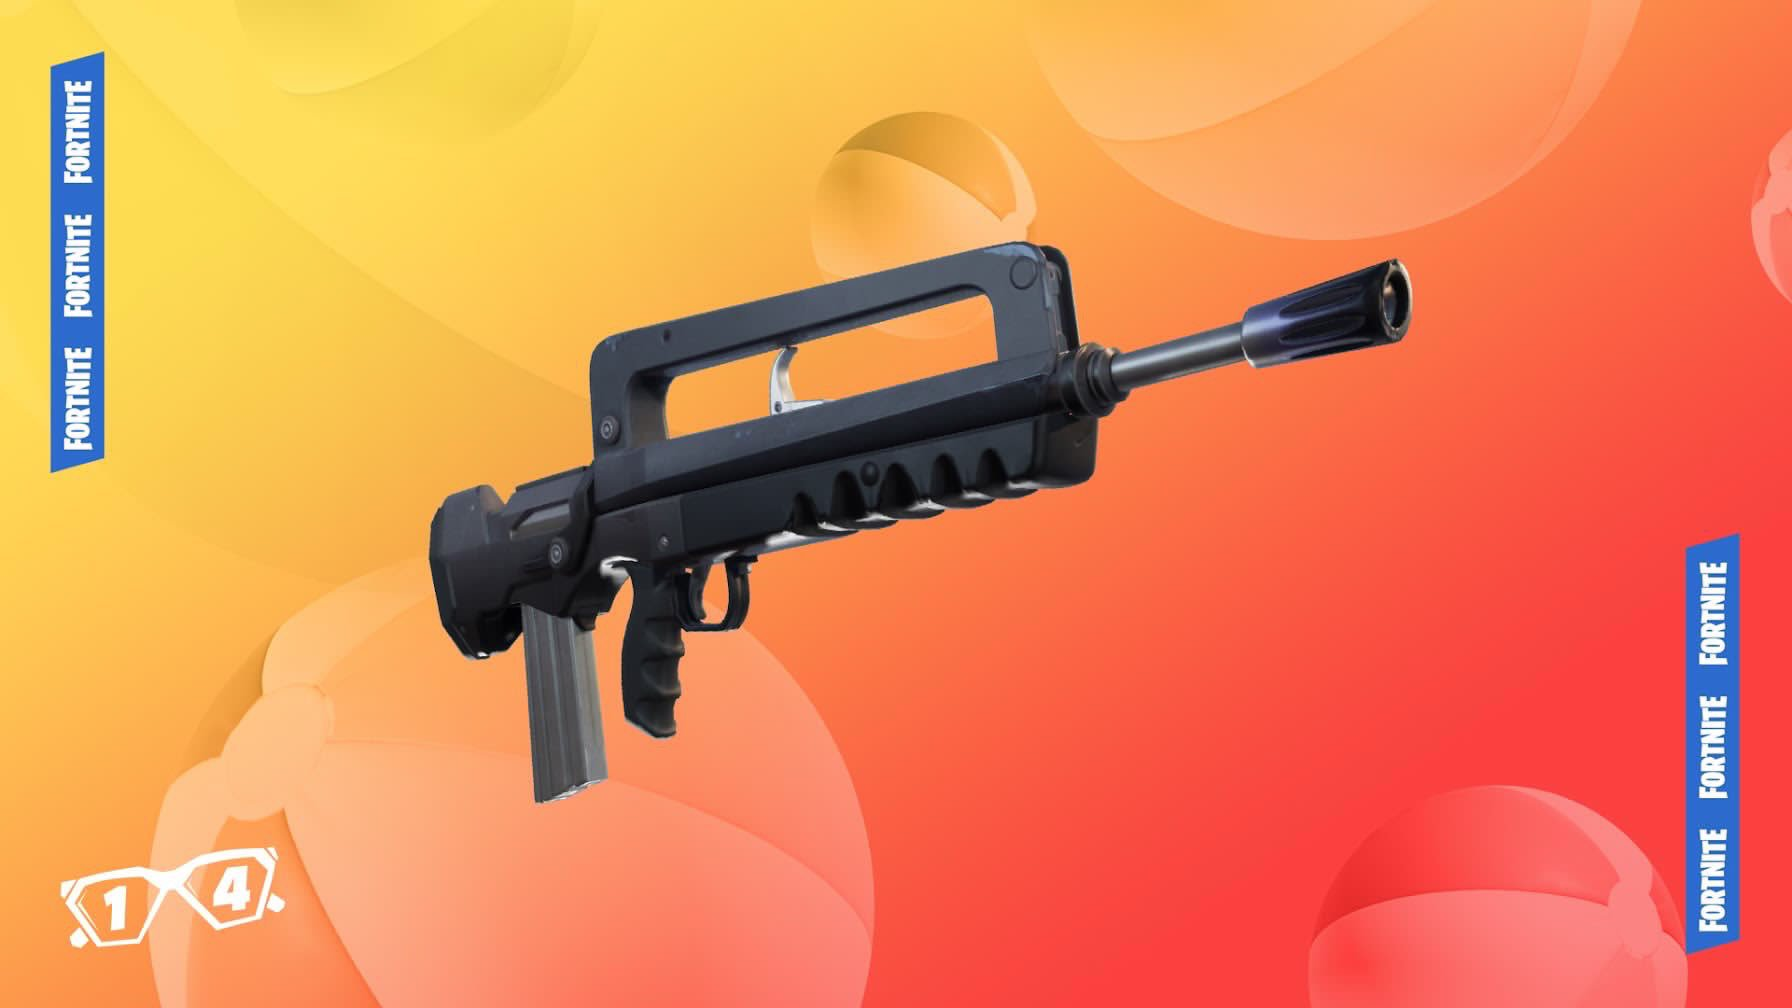 Fortnite 14 Days of Summer Event Day 3 - Pulsating Rifle Unvaulted